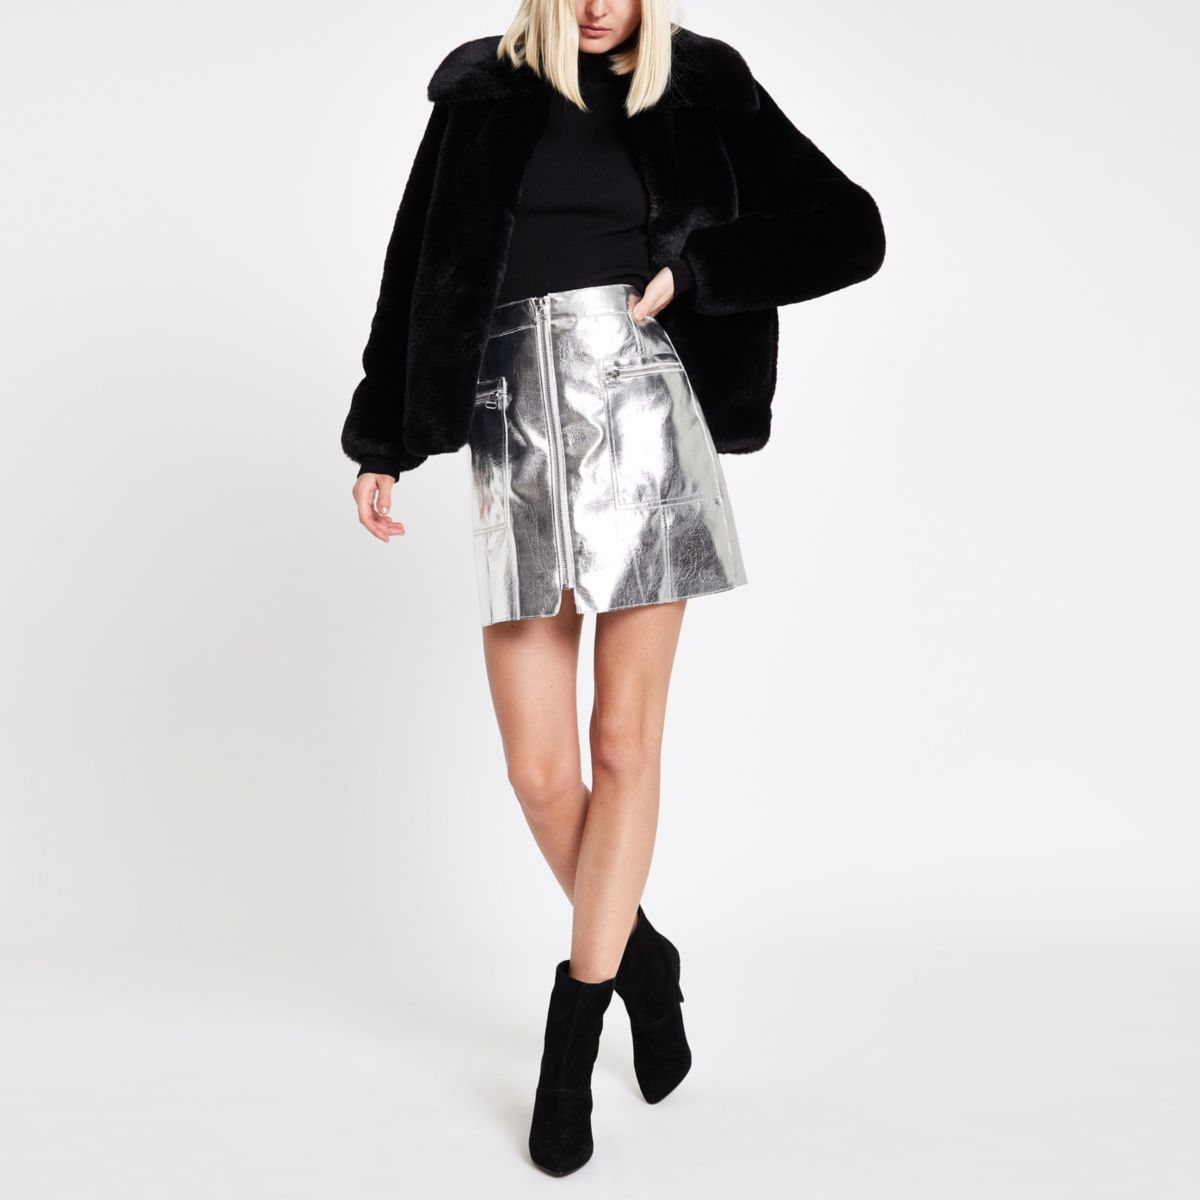 Silver metallic biker mini skirt